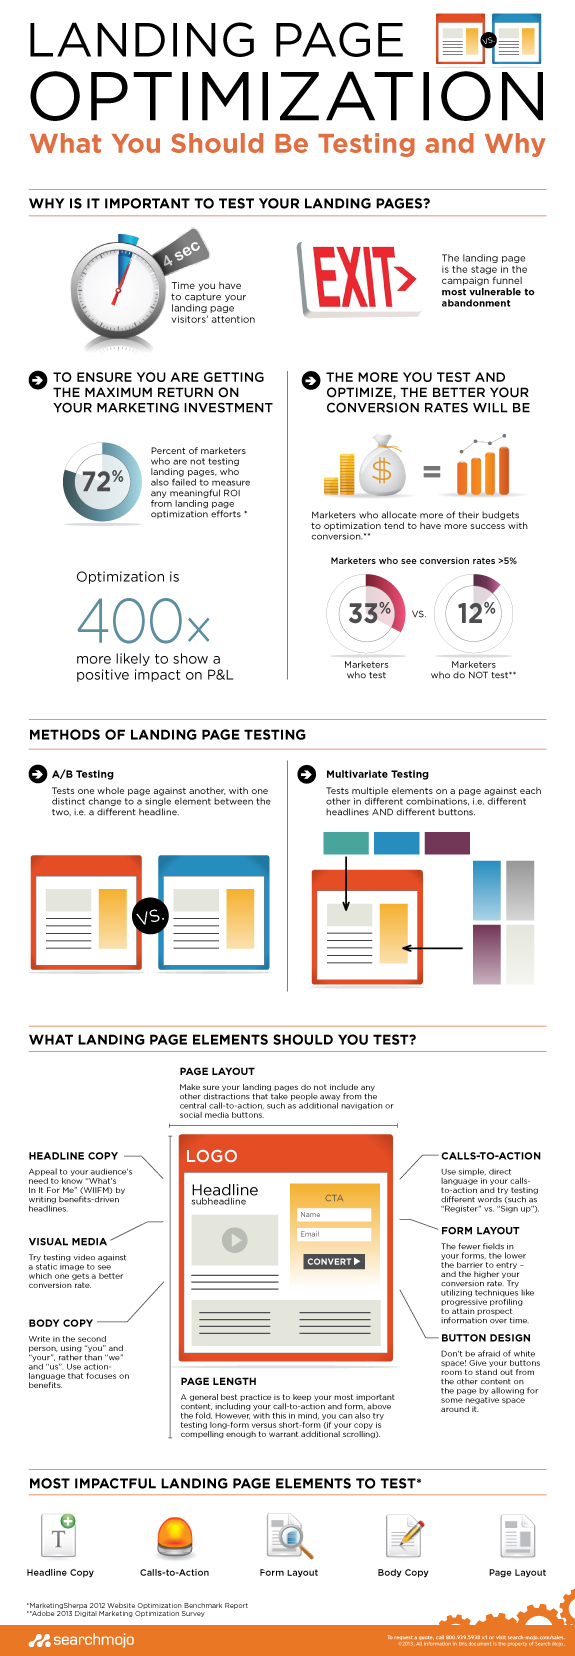 Optimización para Landing Pages